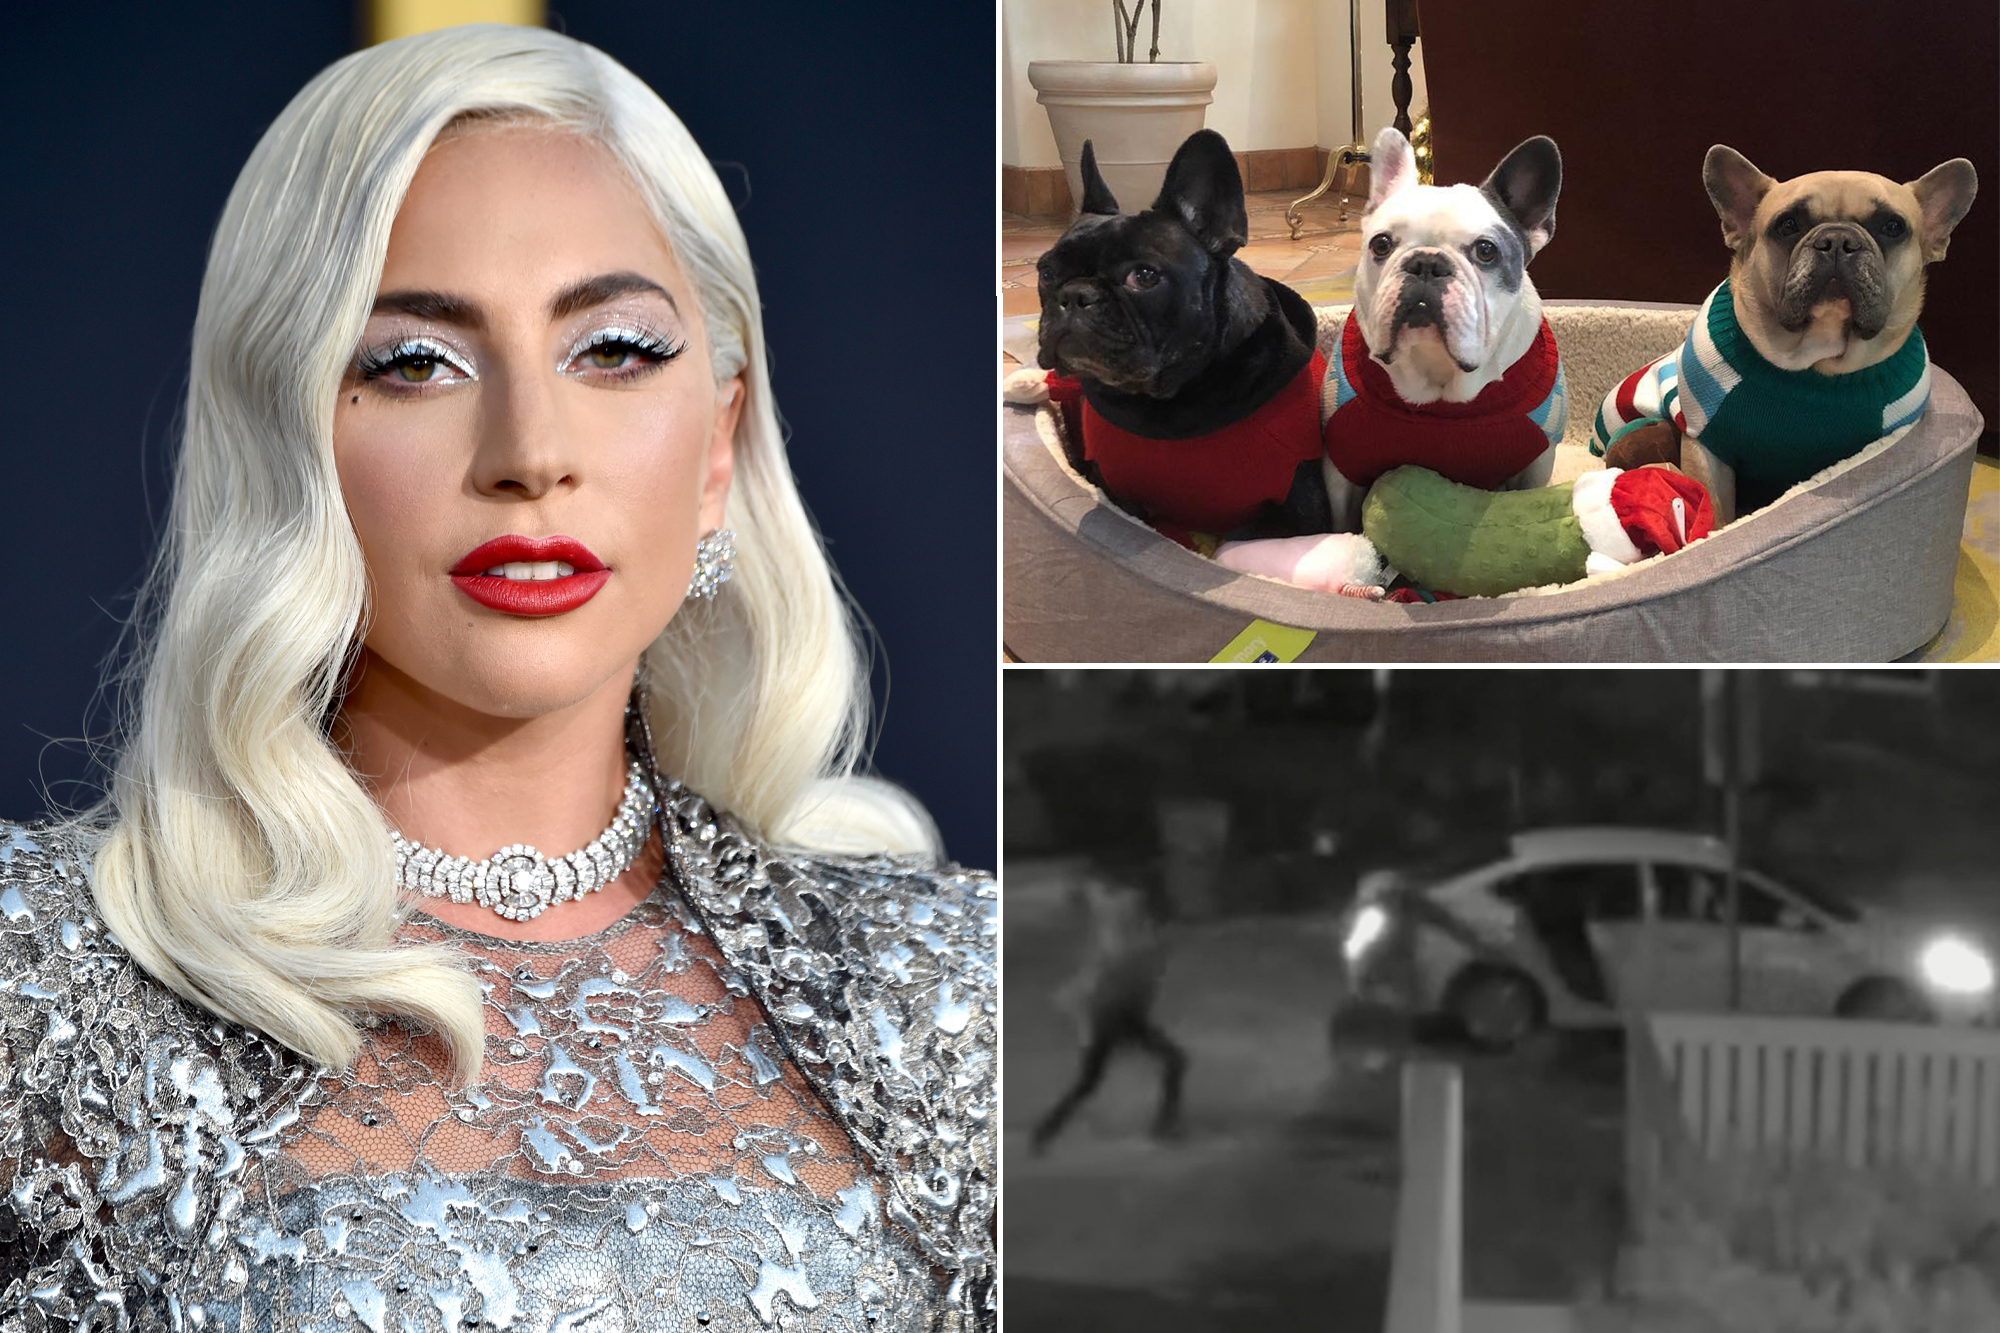 Lady Gaga dognappers charged with attempted murder, robbery